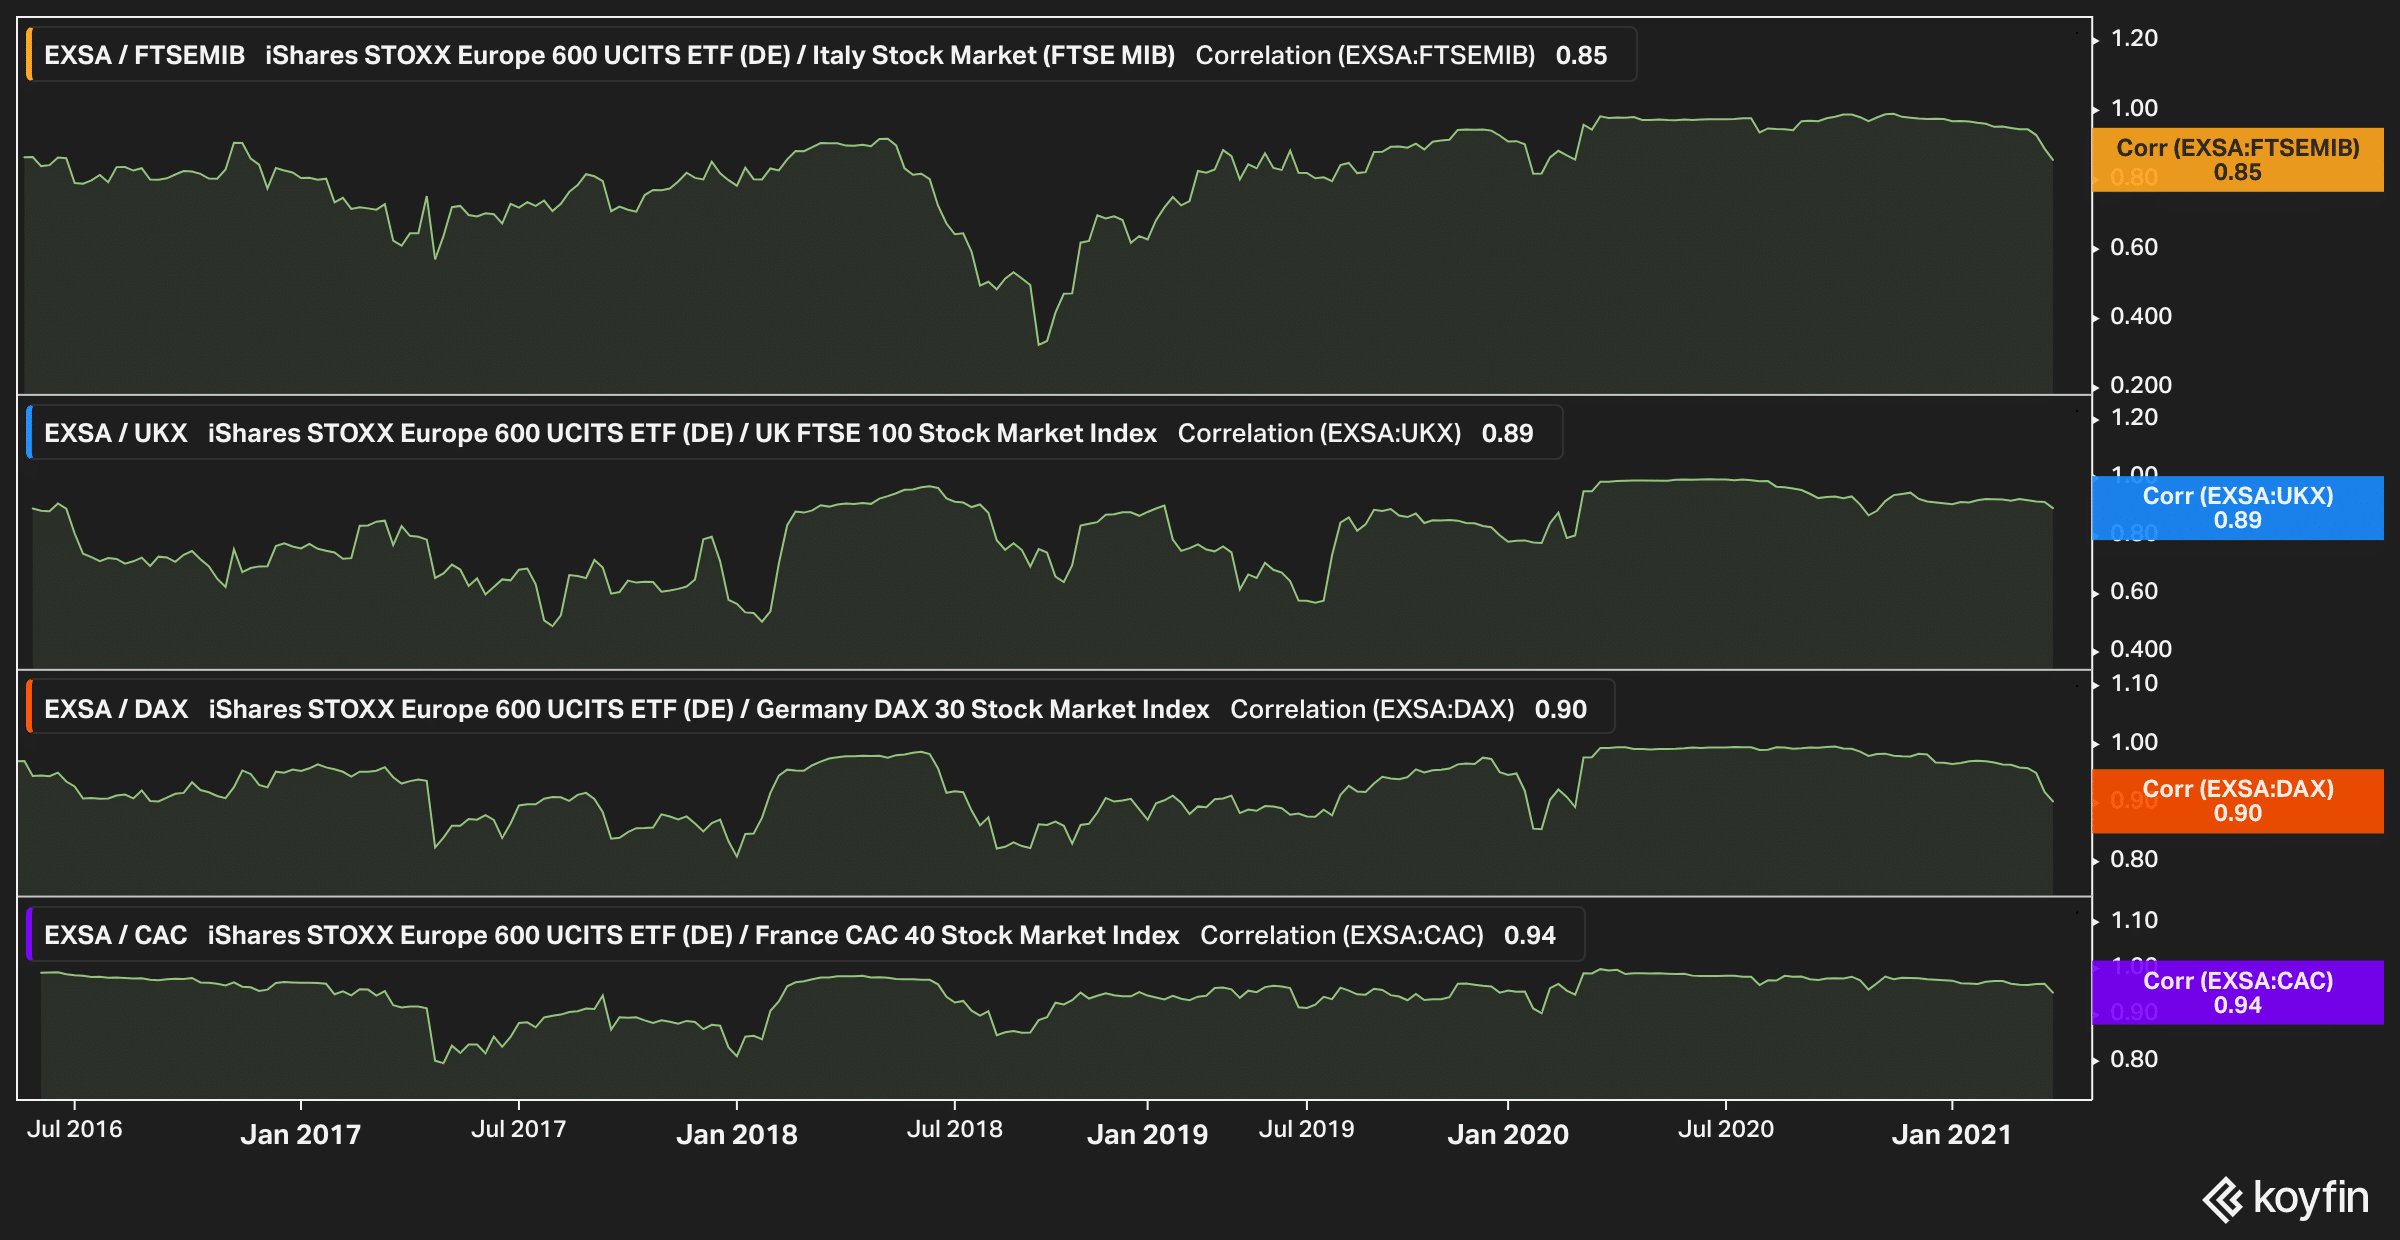 correlation between Stoxx 600 and other european markets